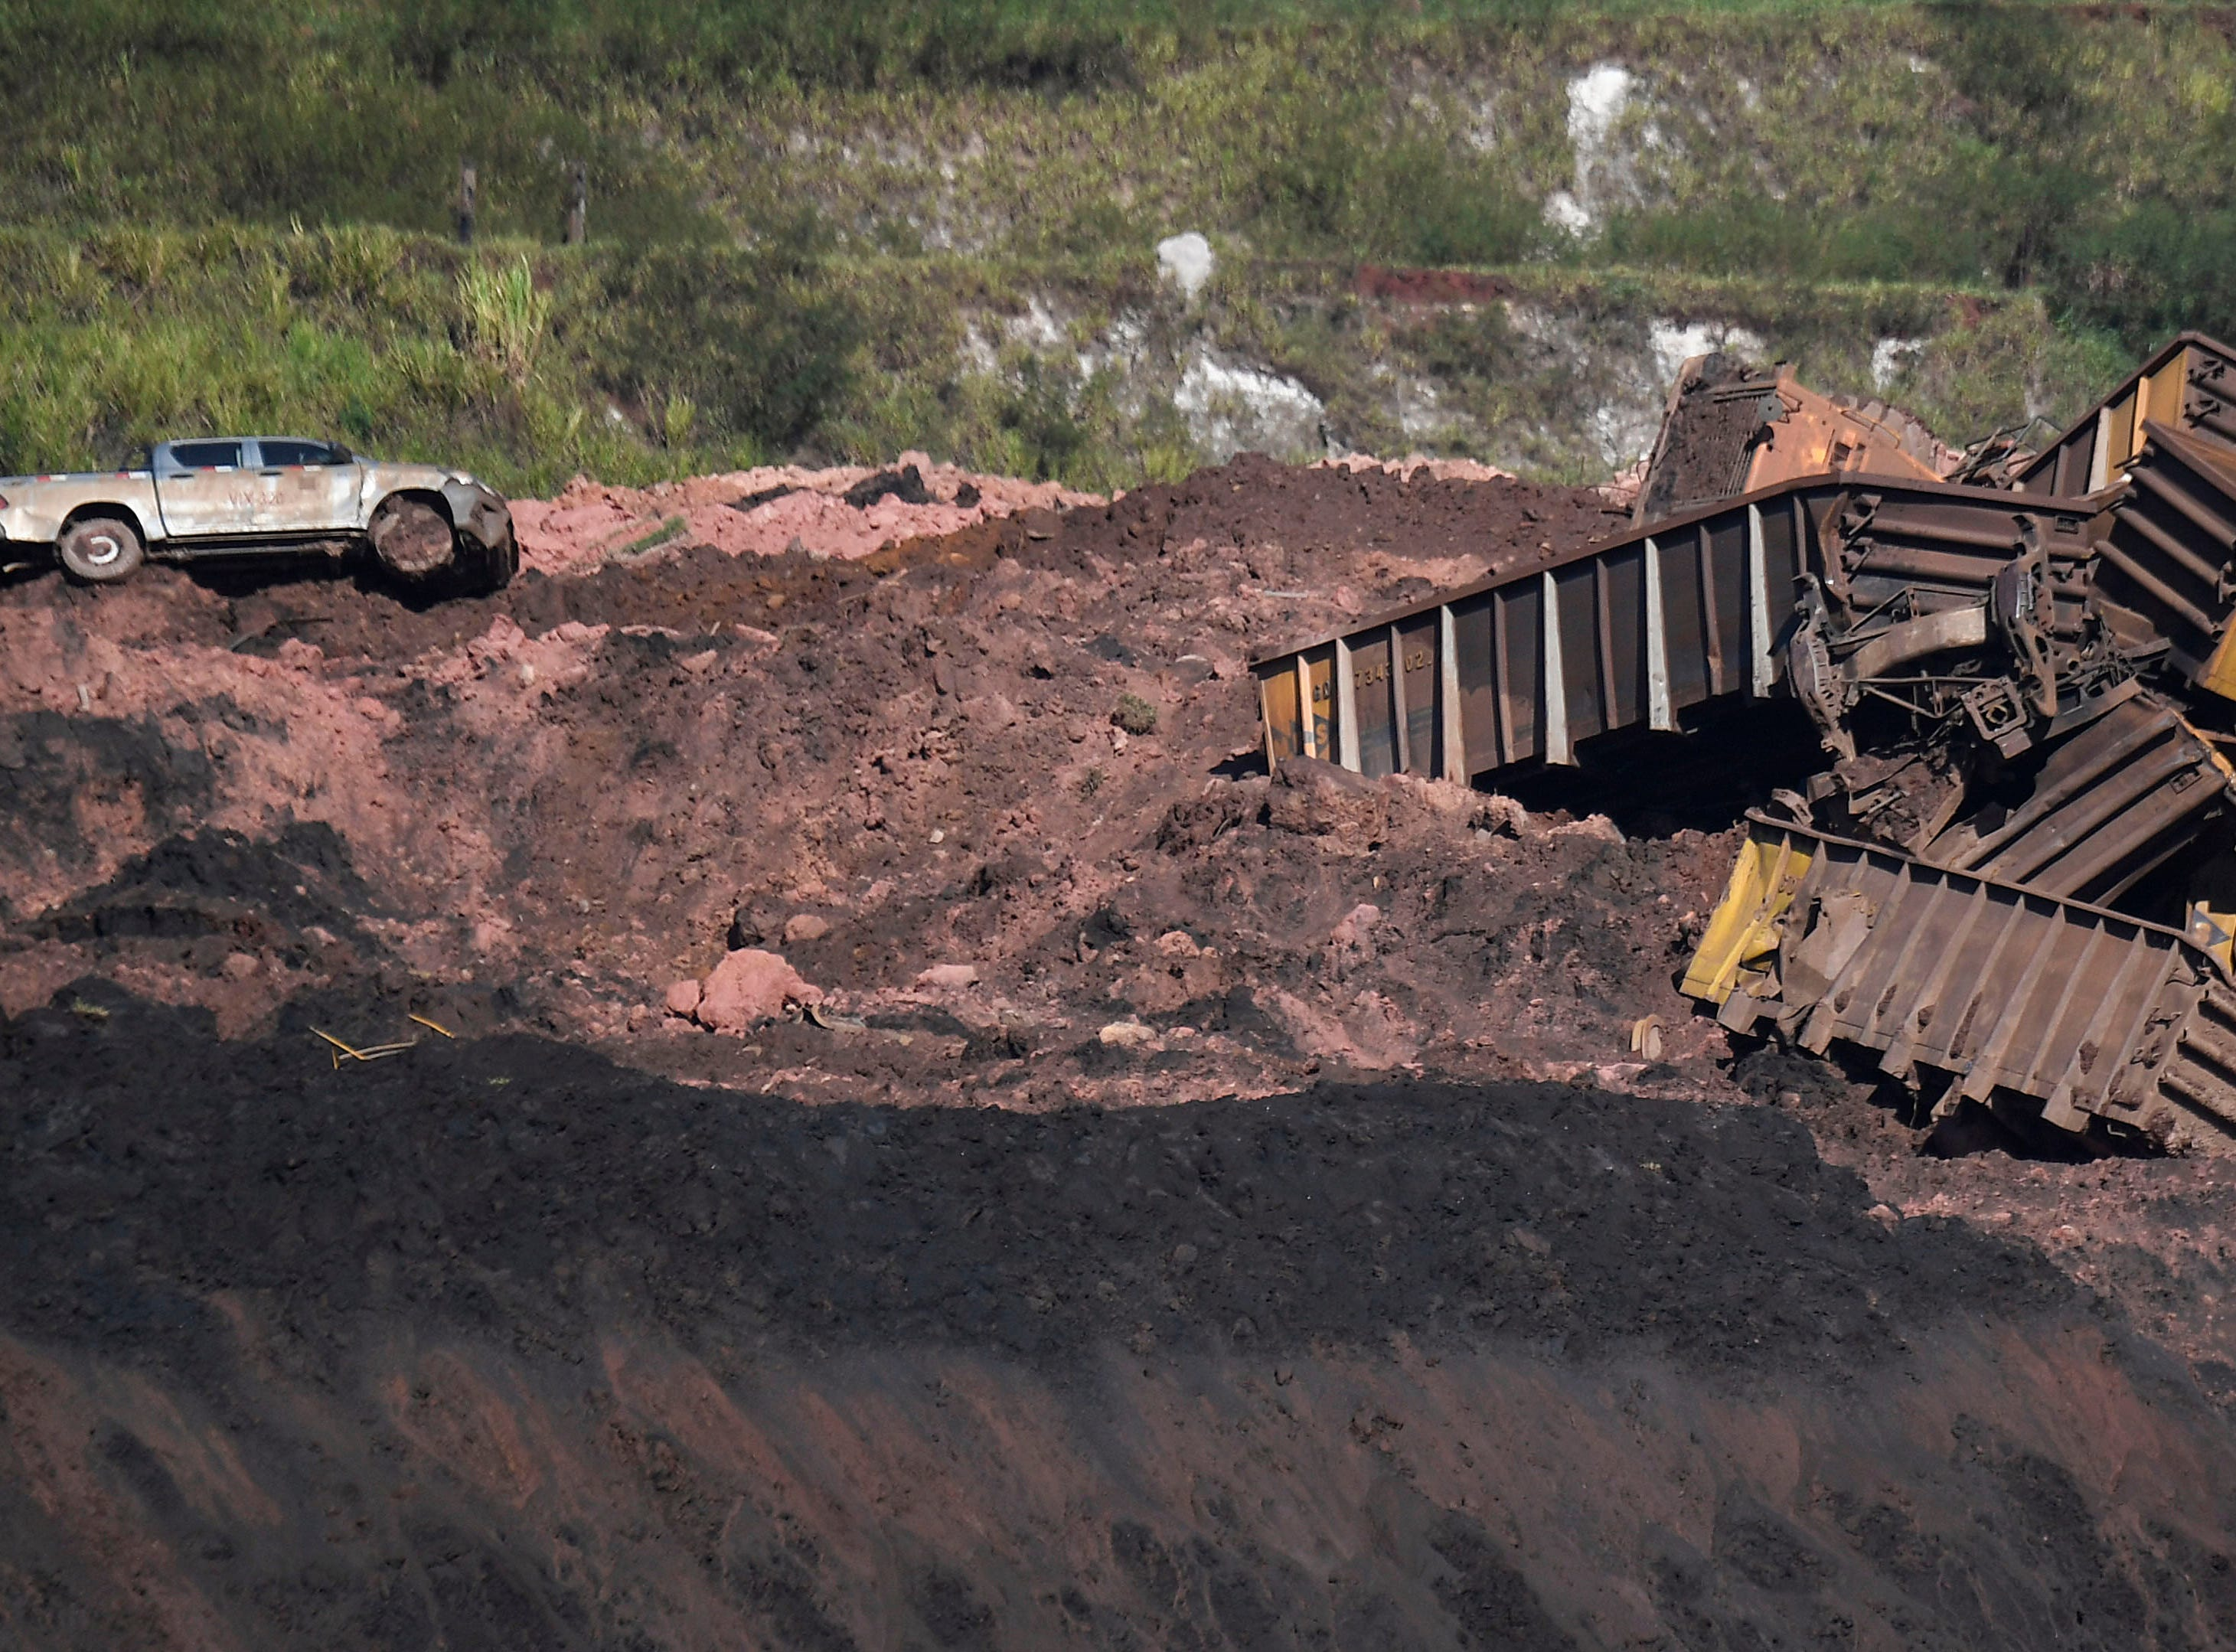 View of a semi-buried vehicle and debris at Corrego do Feijao where last January 25, a dam collapsed at an iron-ore mine belonging to Brazil's giant mining company Vale near the town of Brumadinho in the state of Minas Gerais in southeastern Brazil, on Jan. 31, 2019.